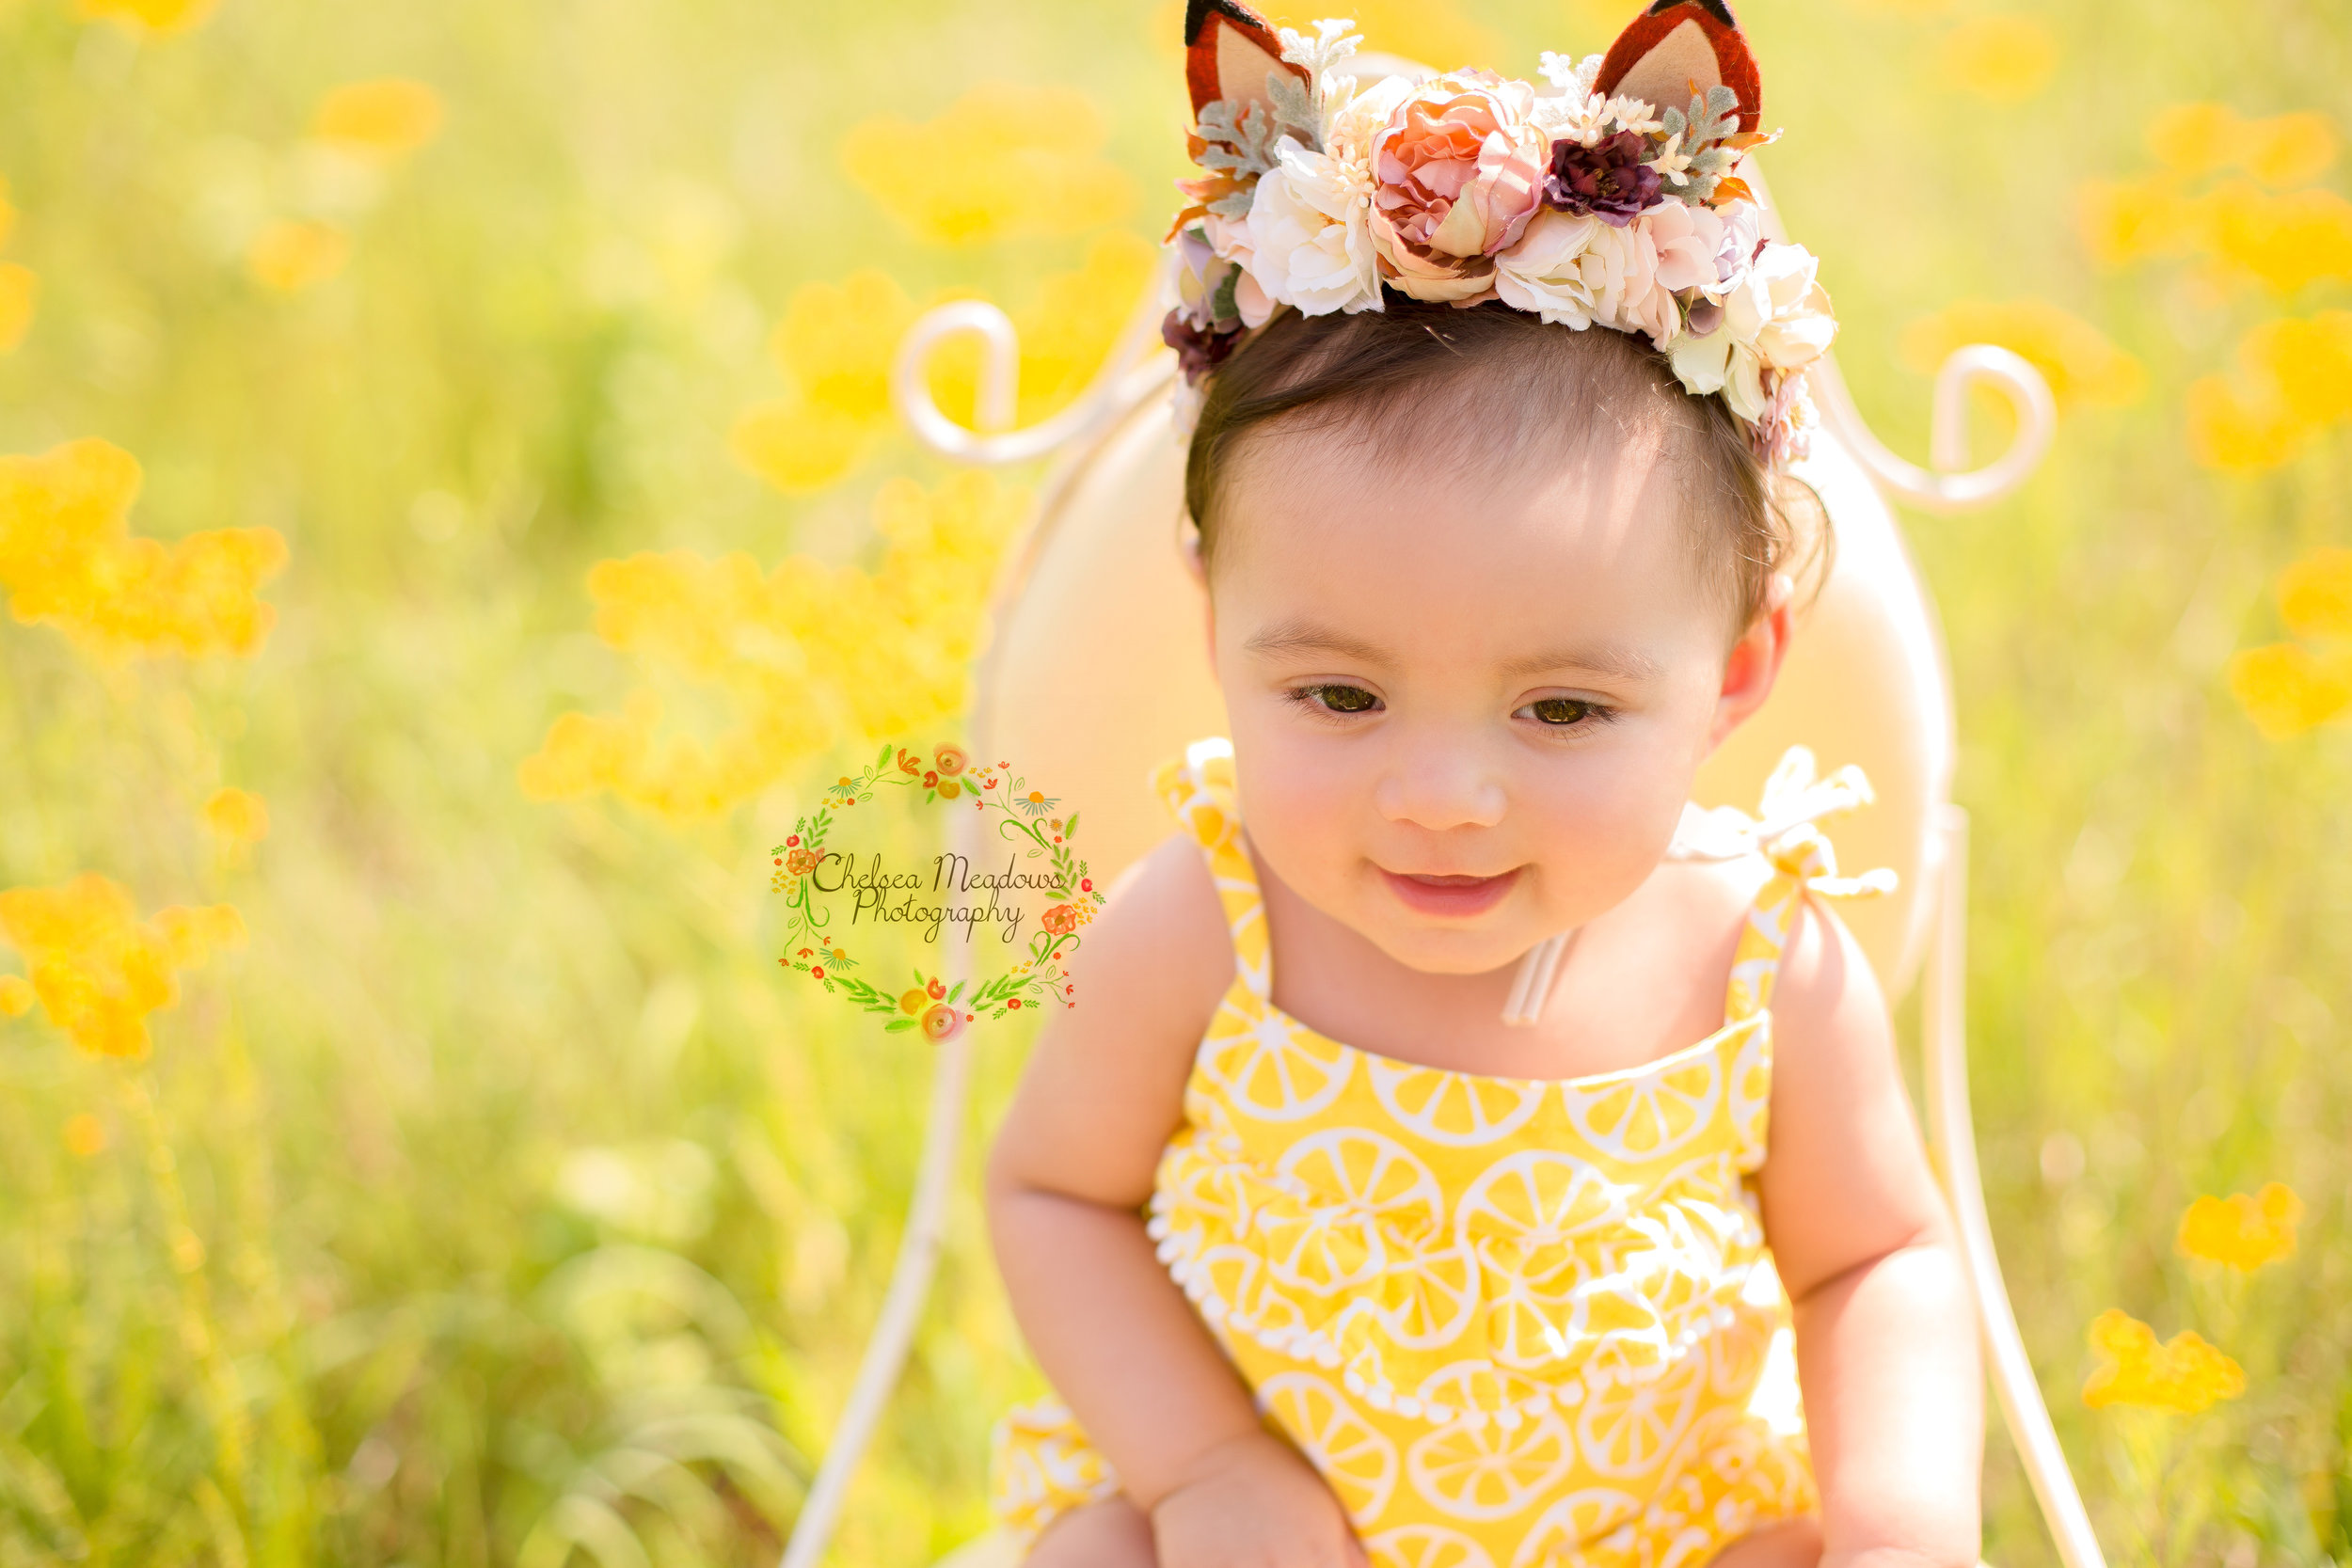 Camryn 6 Month Session - Nashville Family Photographer - Chelsea Meadows Photography (7)_edited-1.jpg